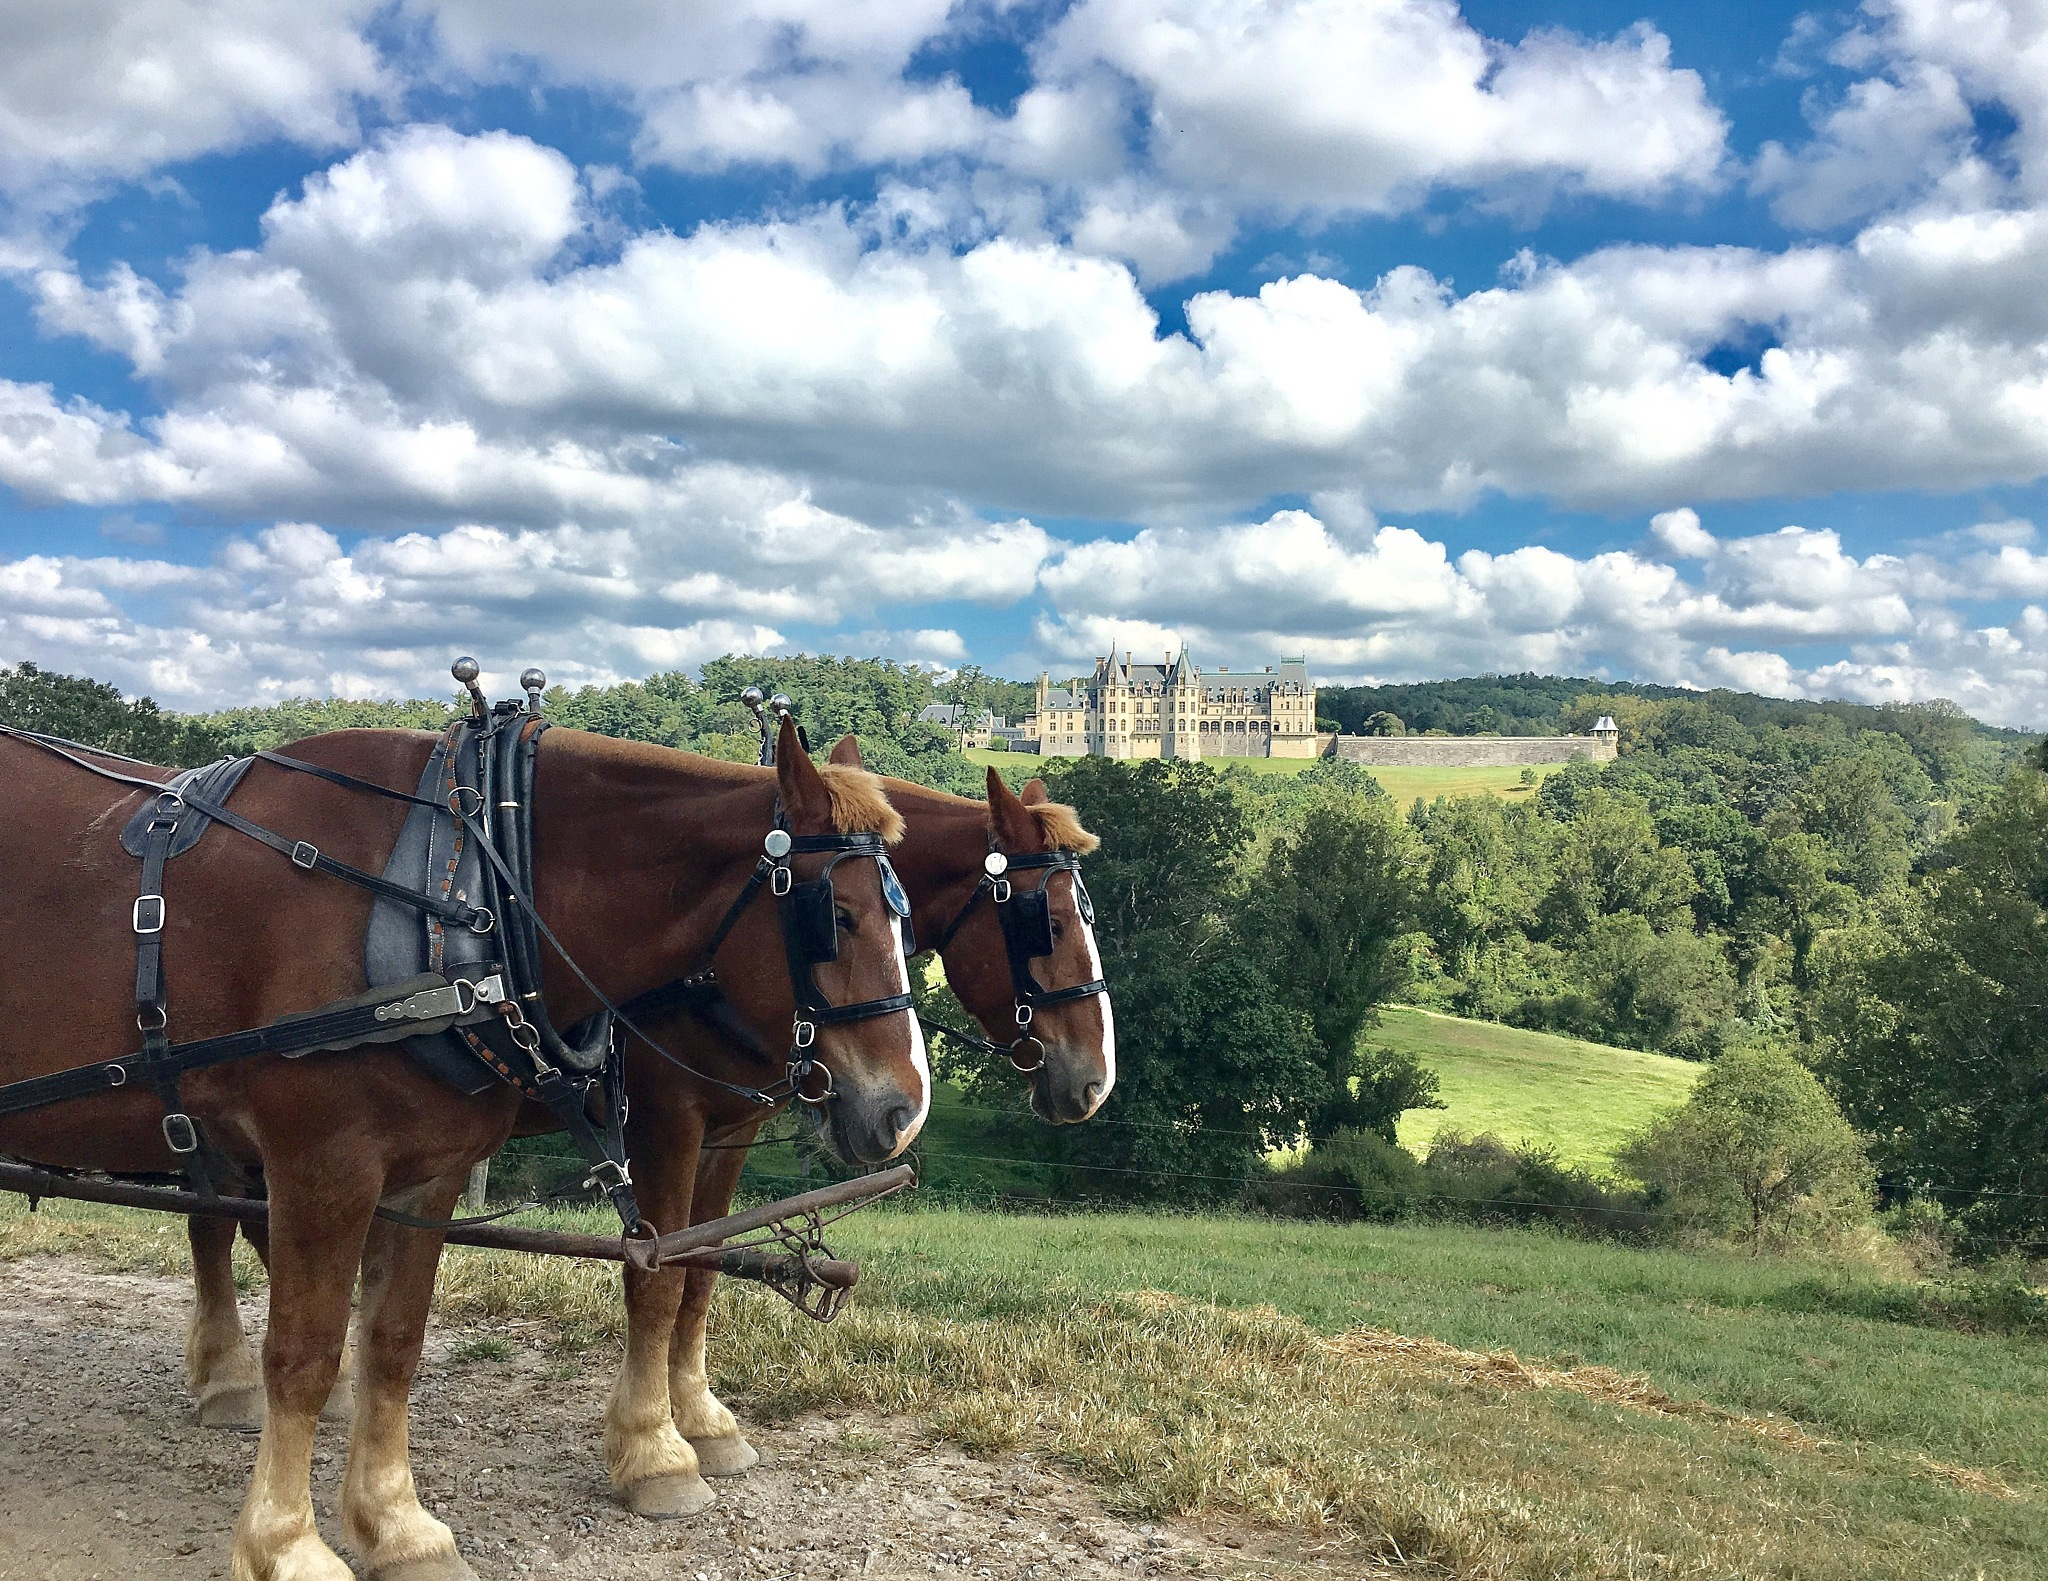 Horse Tour of Biltmore Estate by becky.c.jones.3